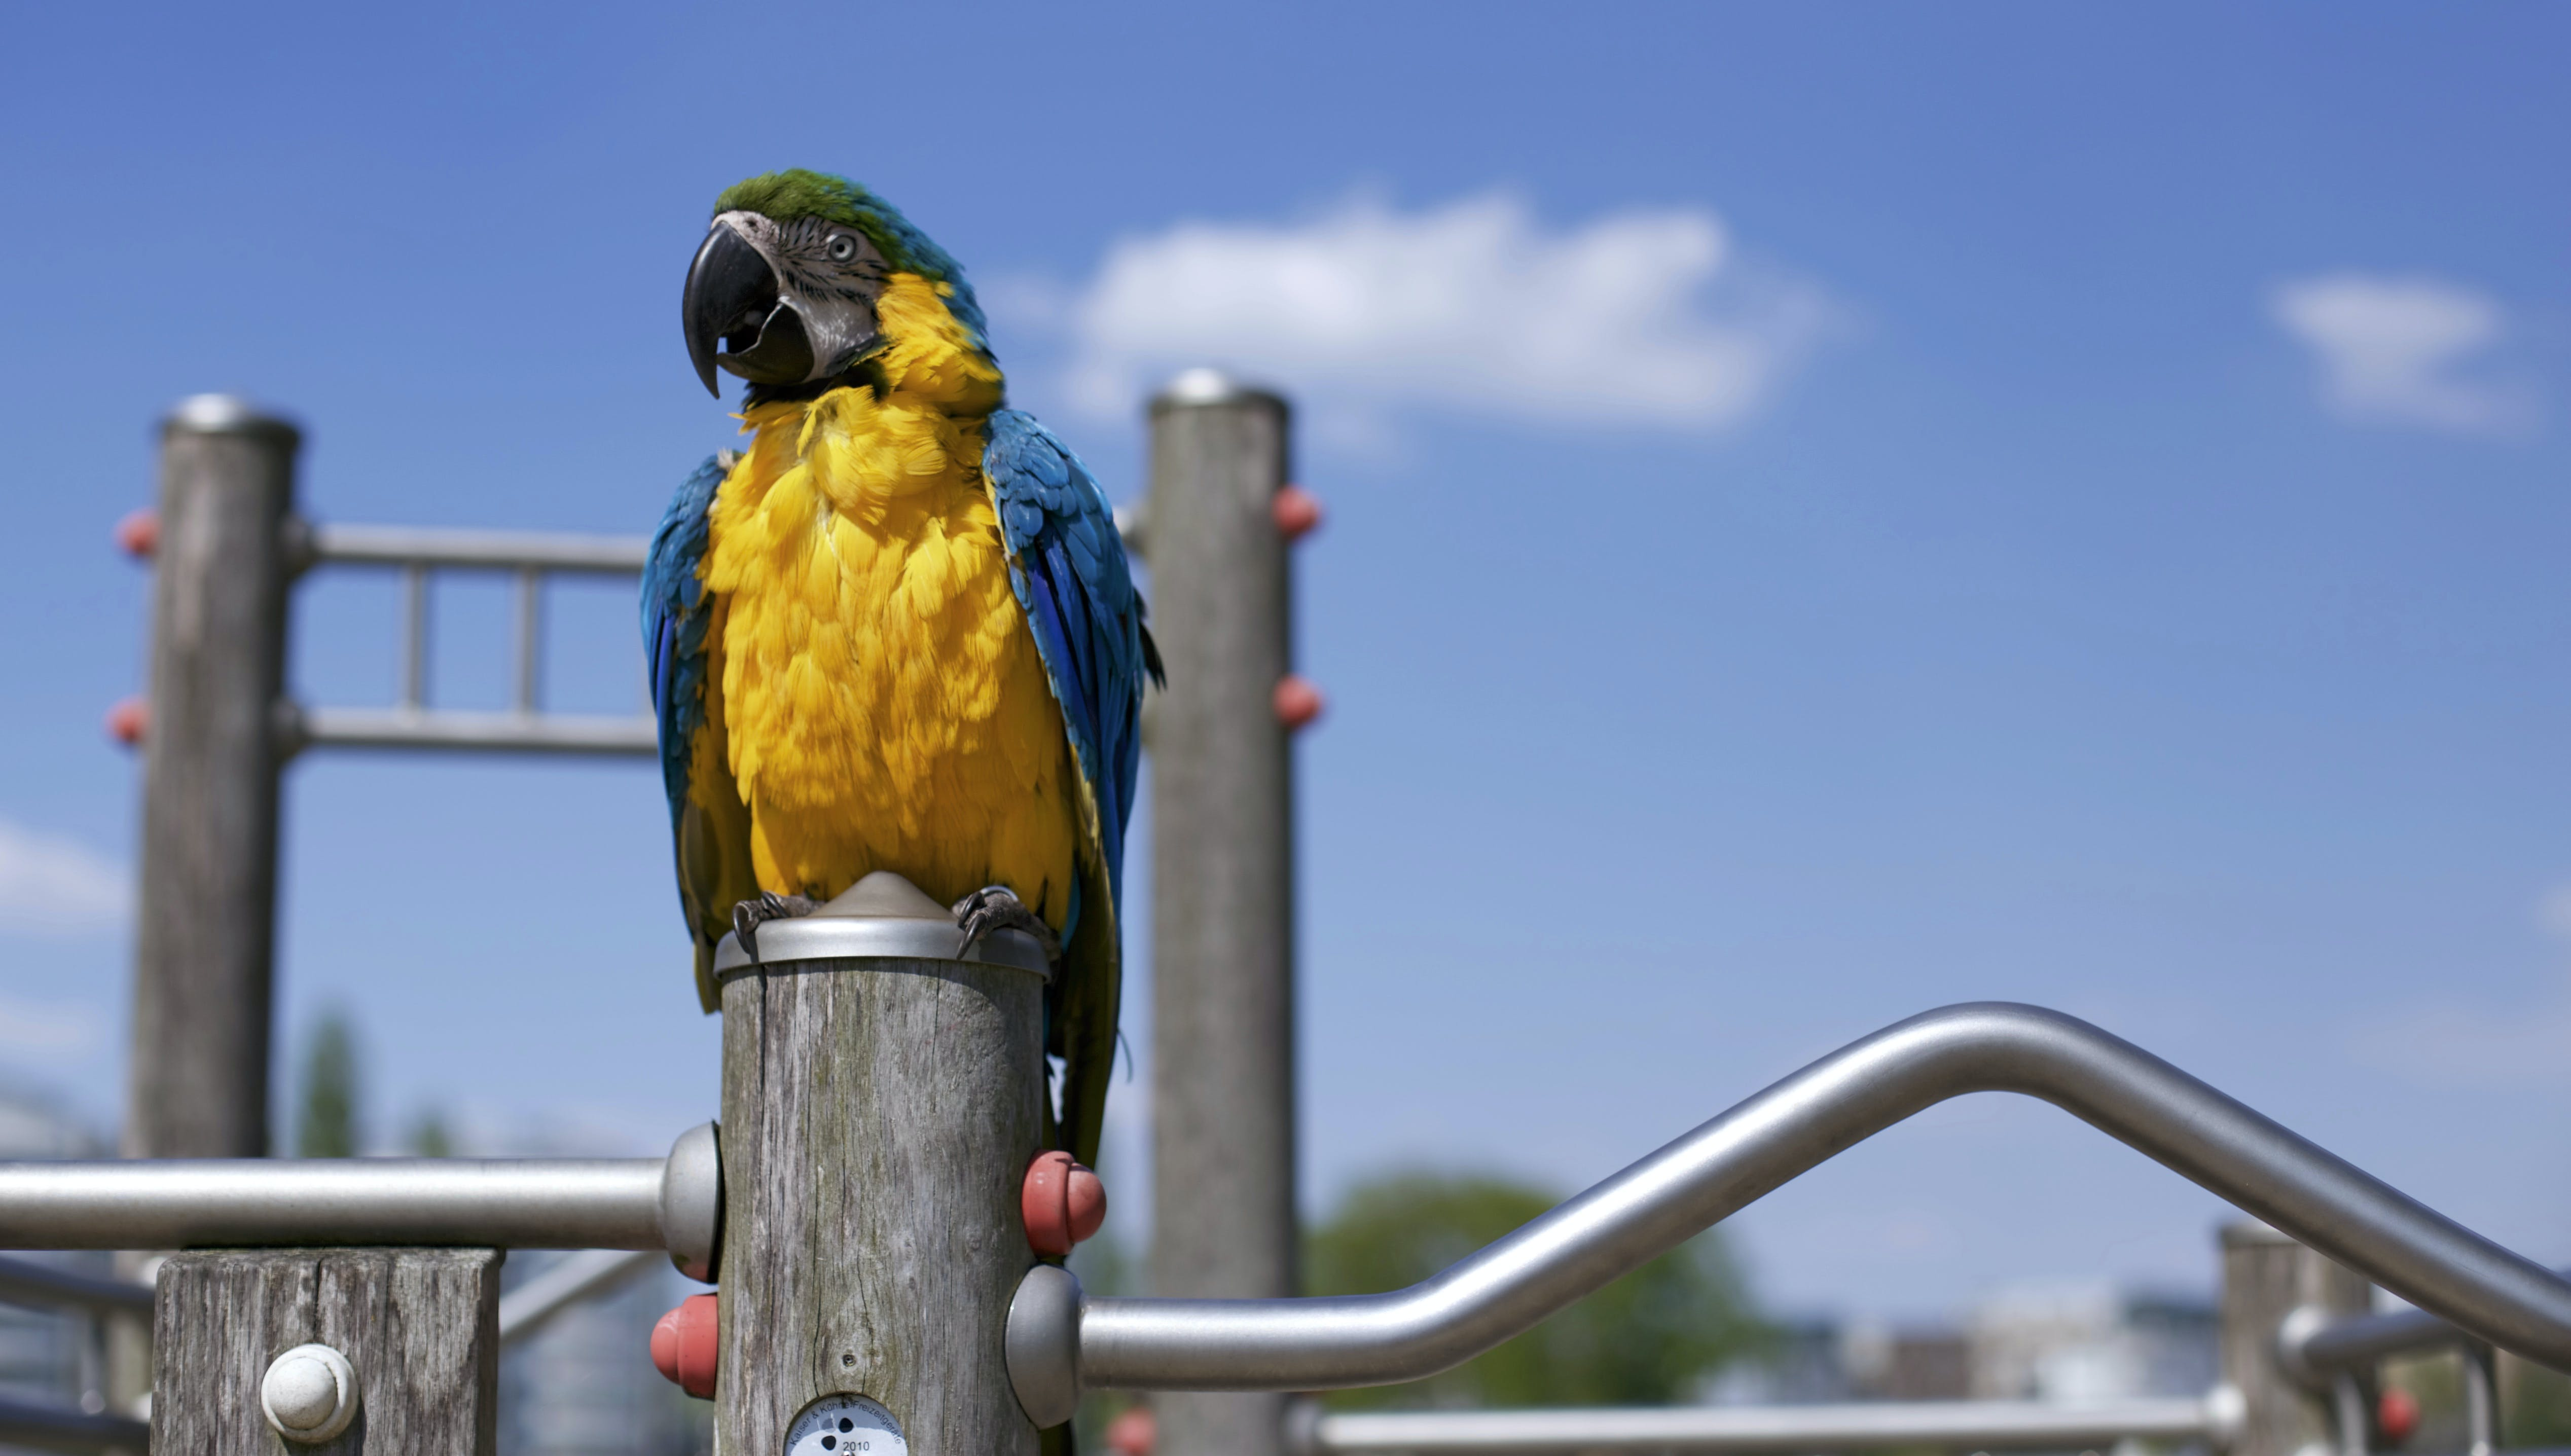 Scarlet Macaw on Brown Wooden Framed Metal Railing during Daytime in Macro Photography